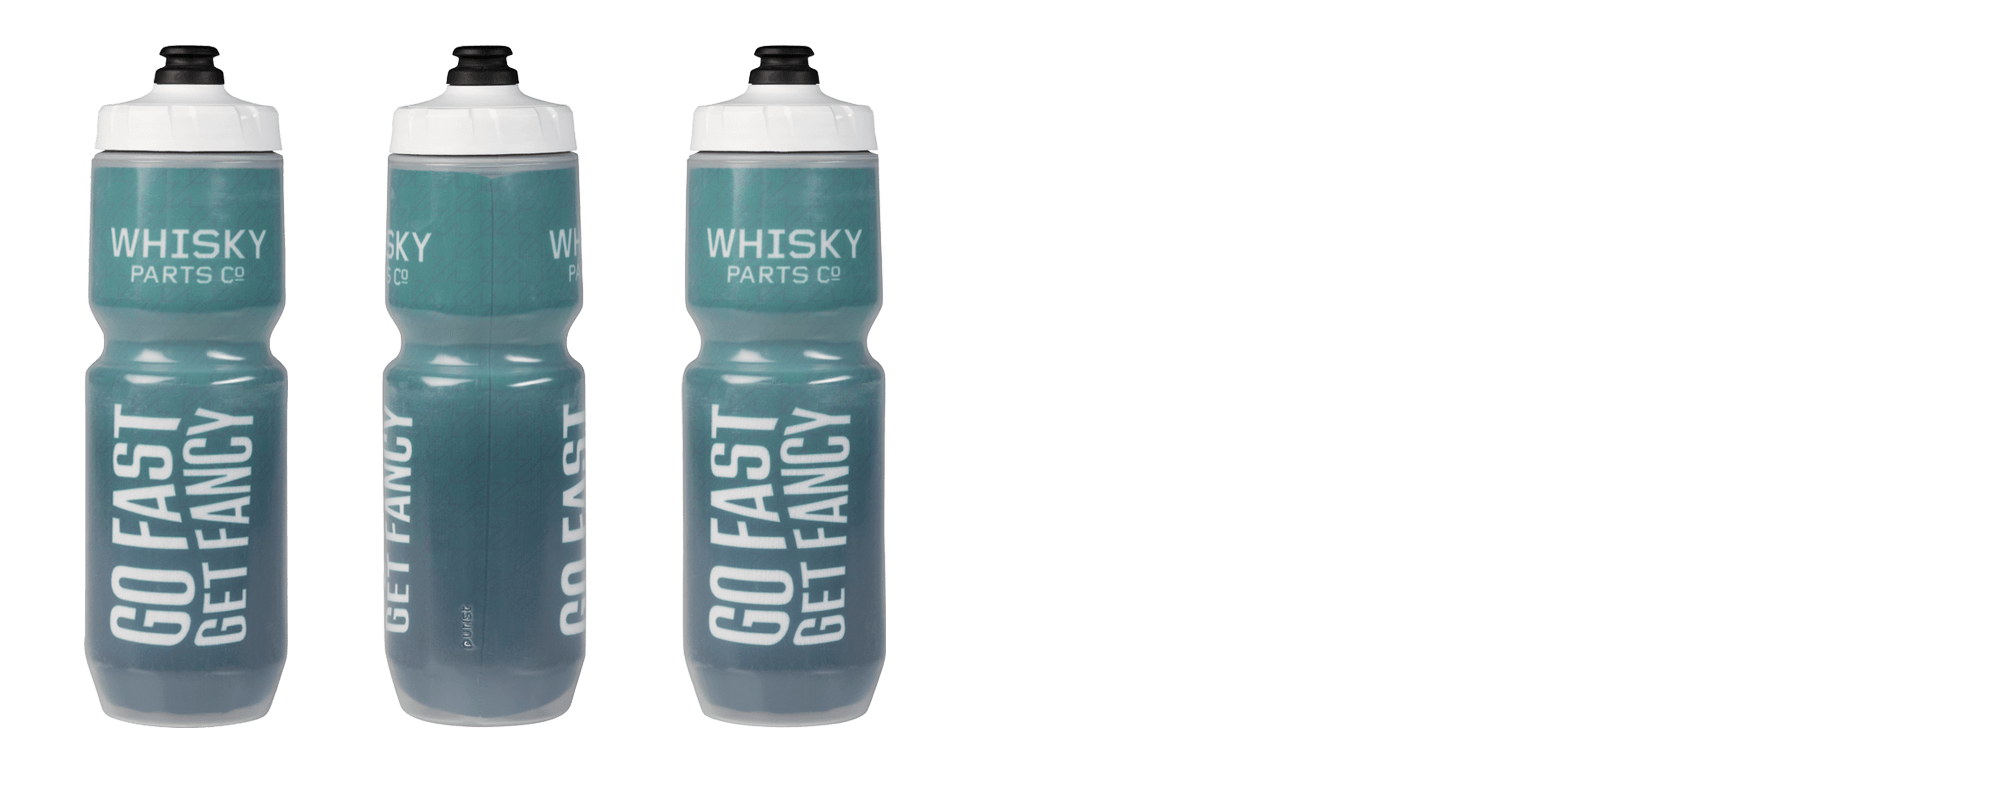 Whisky Go Fast Get Fancy Insulated Purist Water Bottle - Green and White - Multi-Side View